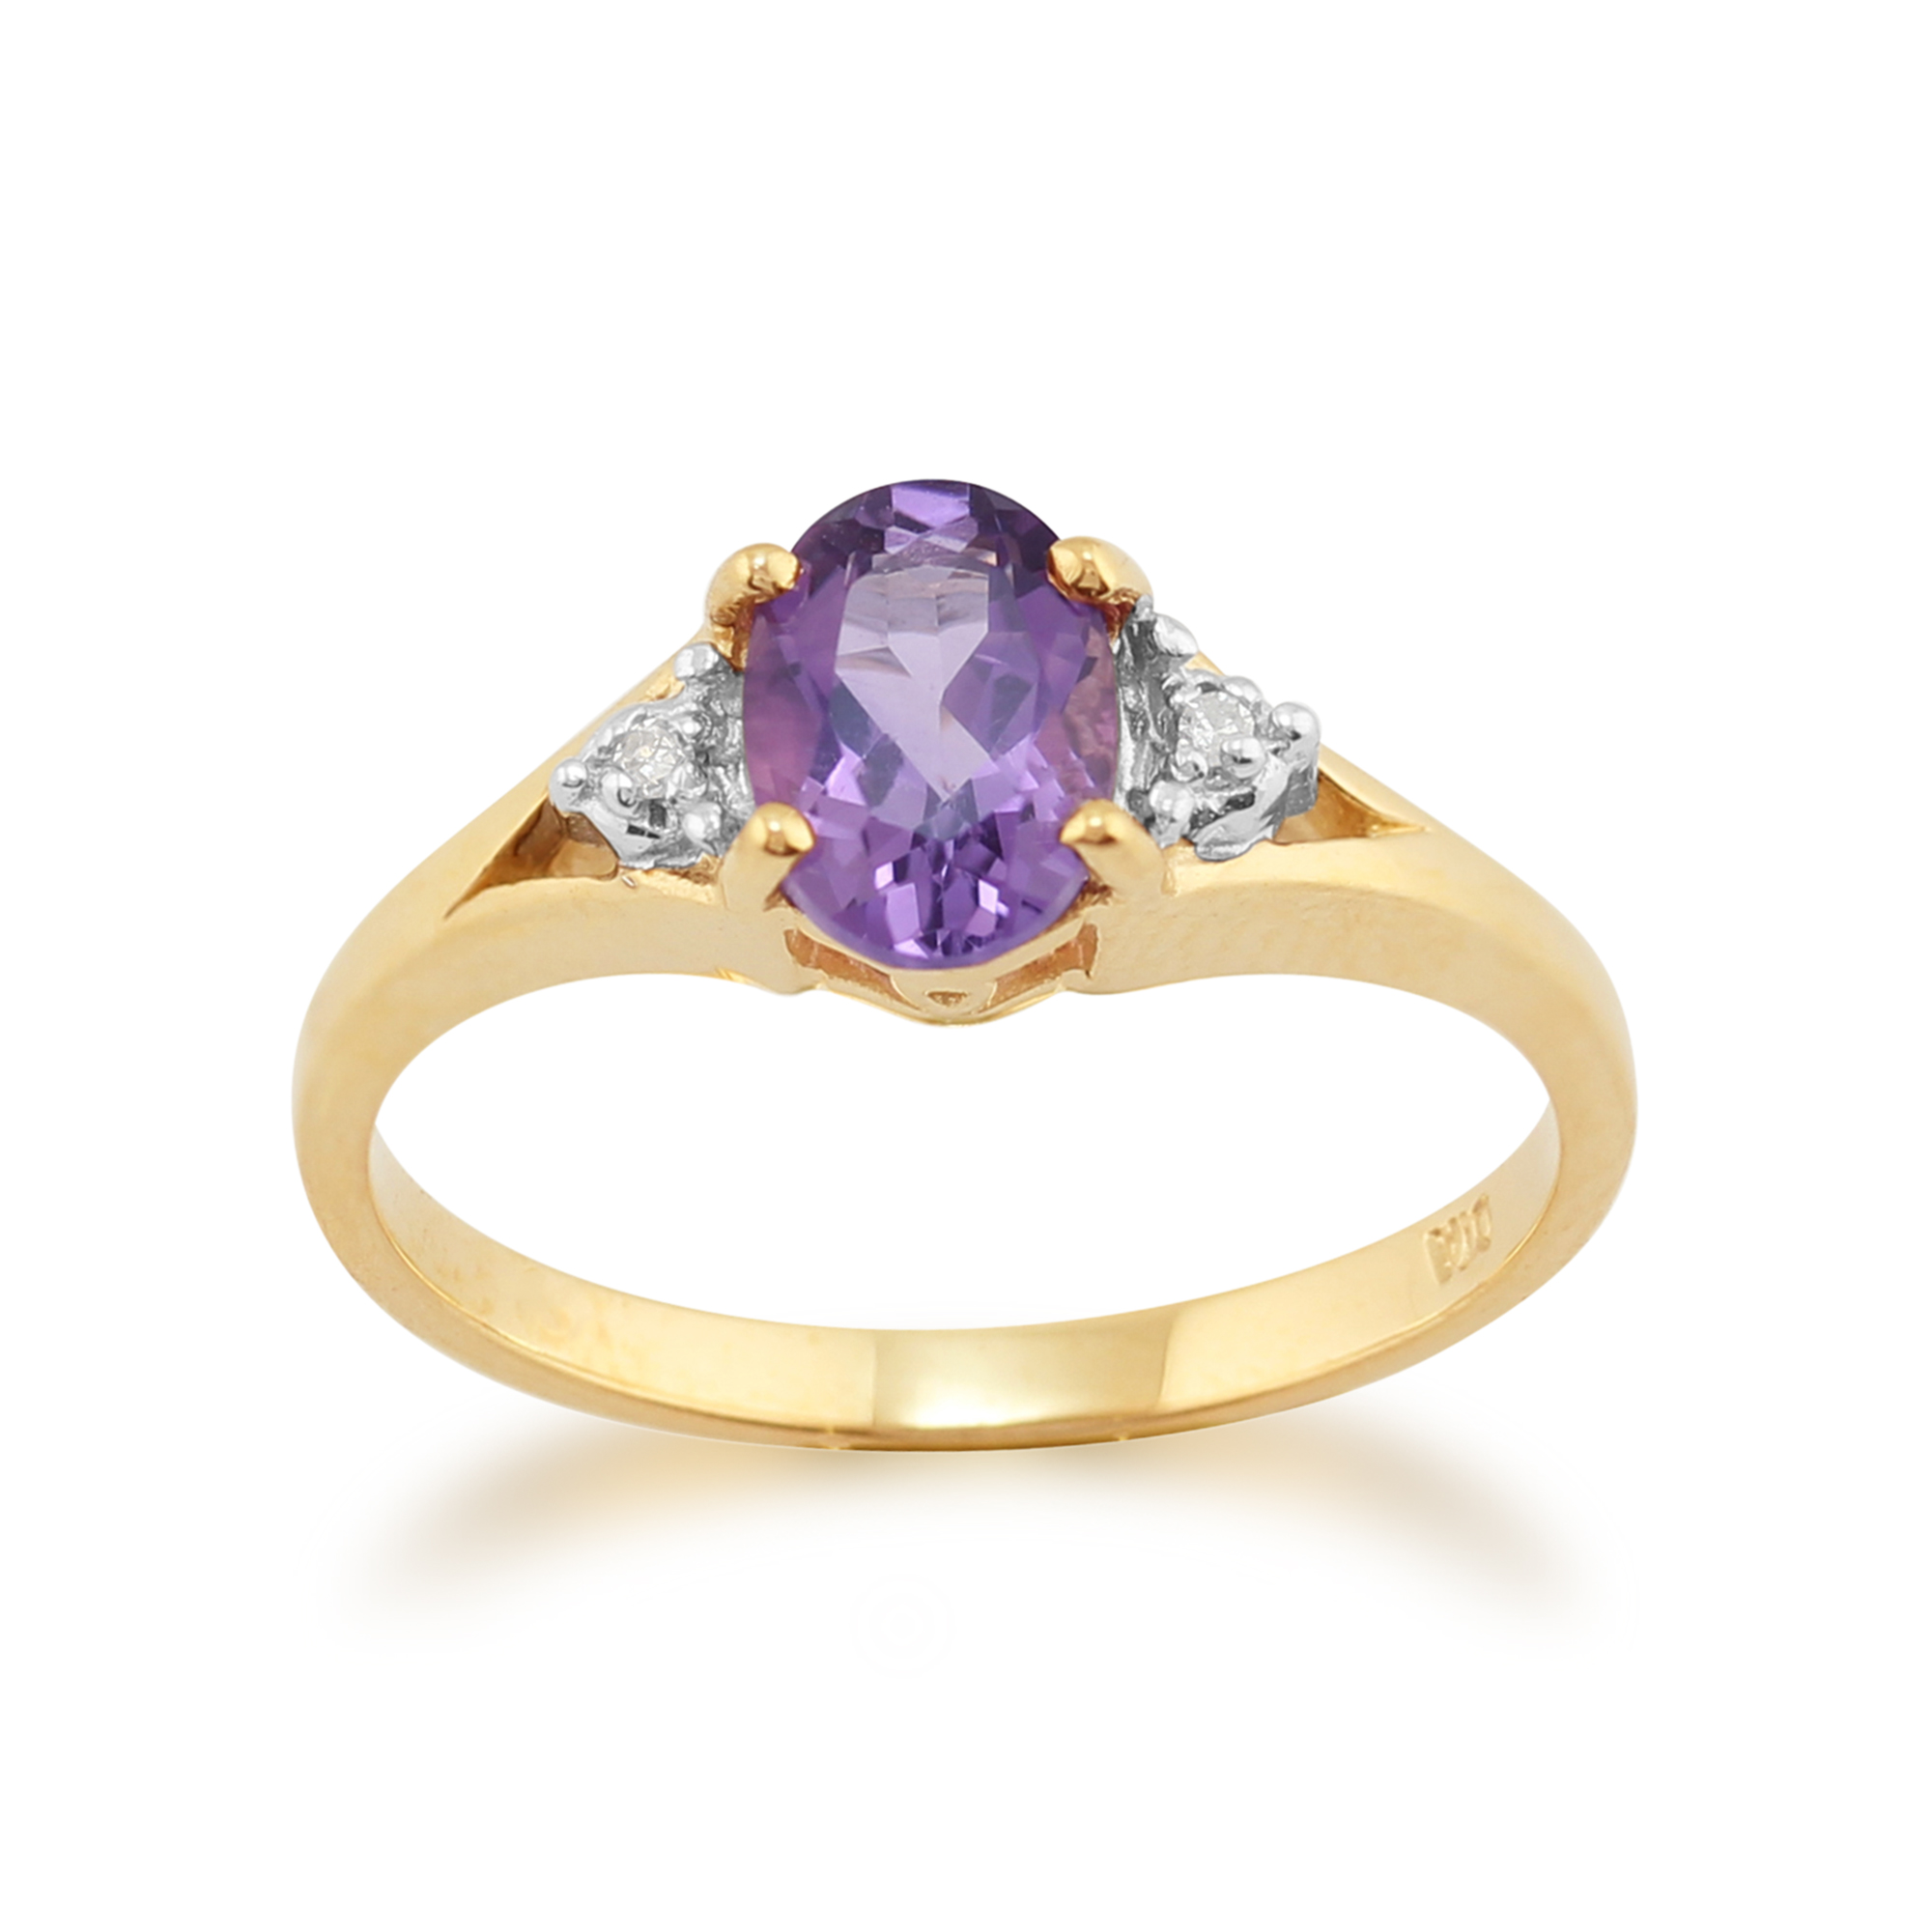 9ct Yellow Gold 0.63ct Natural Amethyst & Diamond Single Stone Ring Size: L